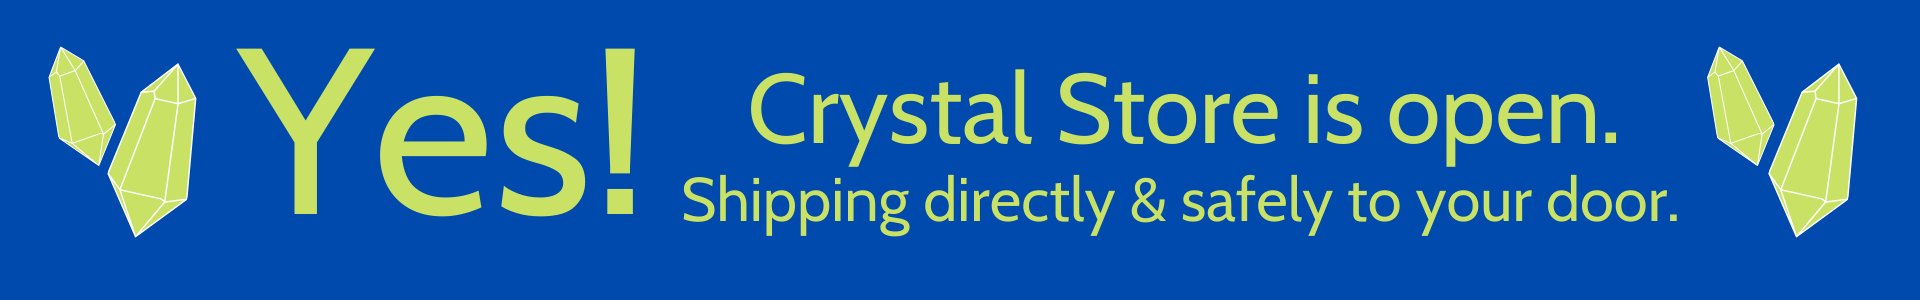 crystal-store-banner.png